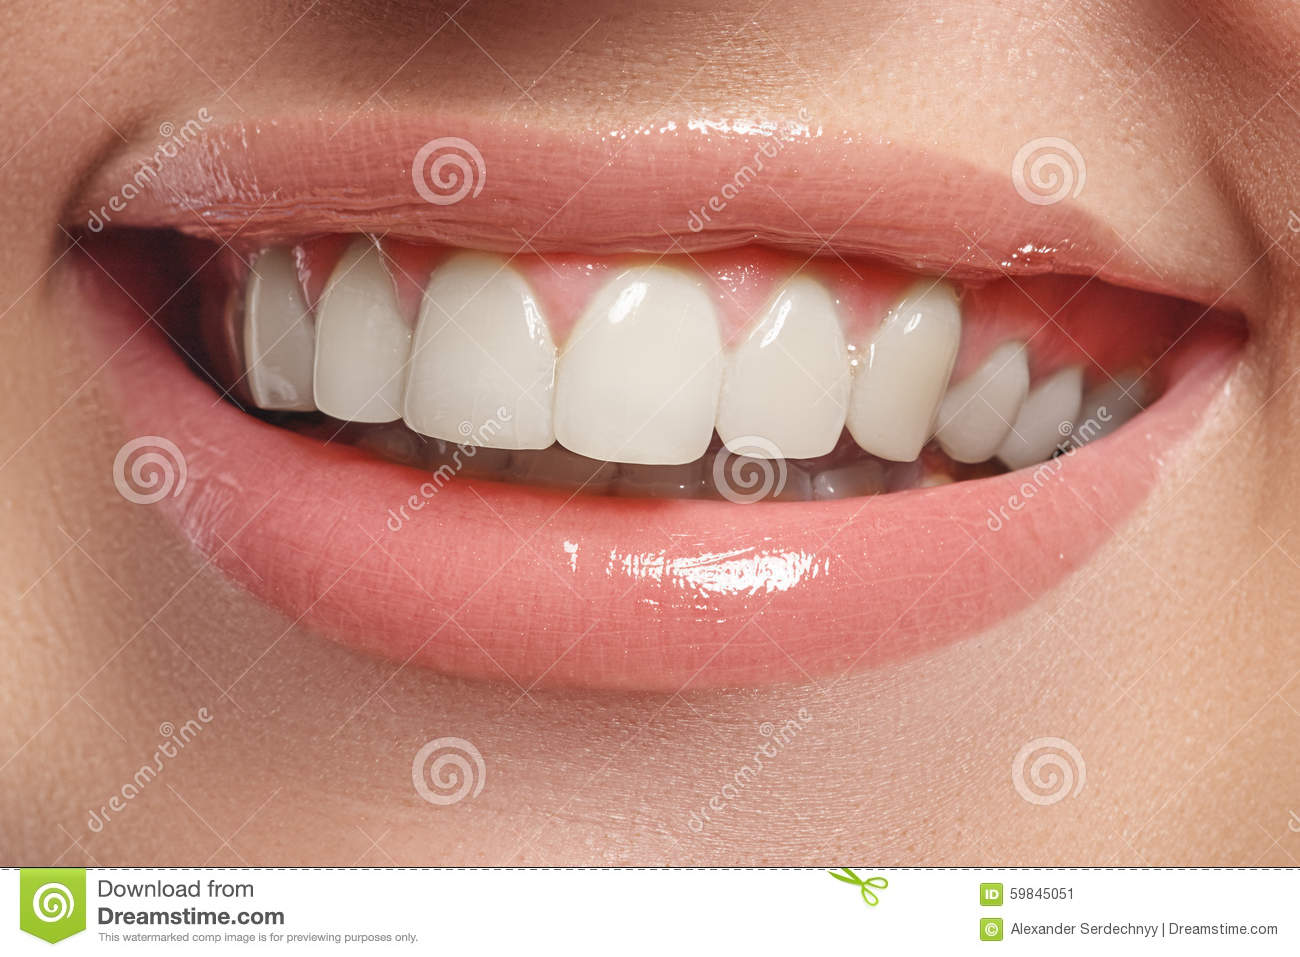 How To Make Your Teeth Super White At Home